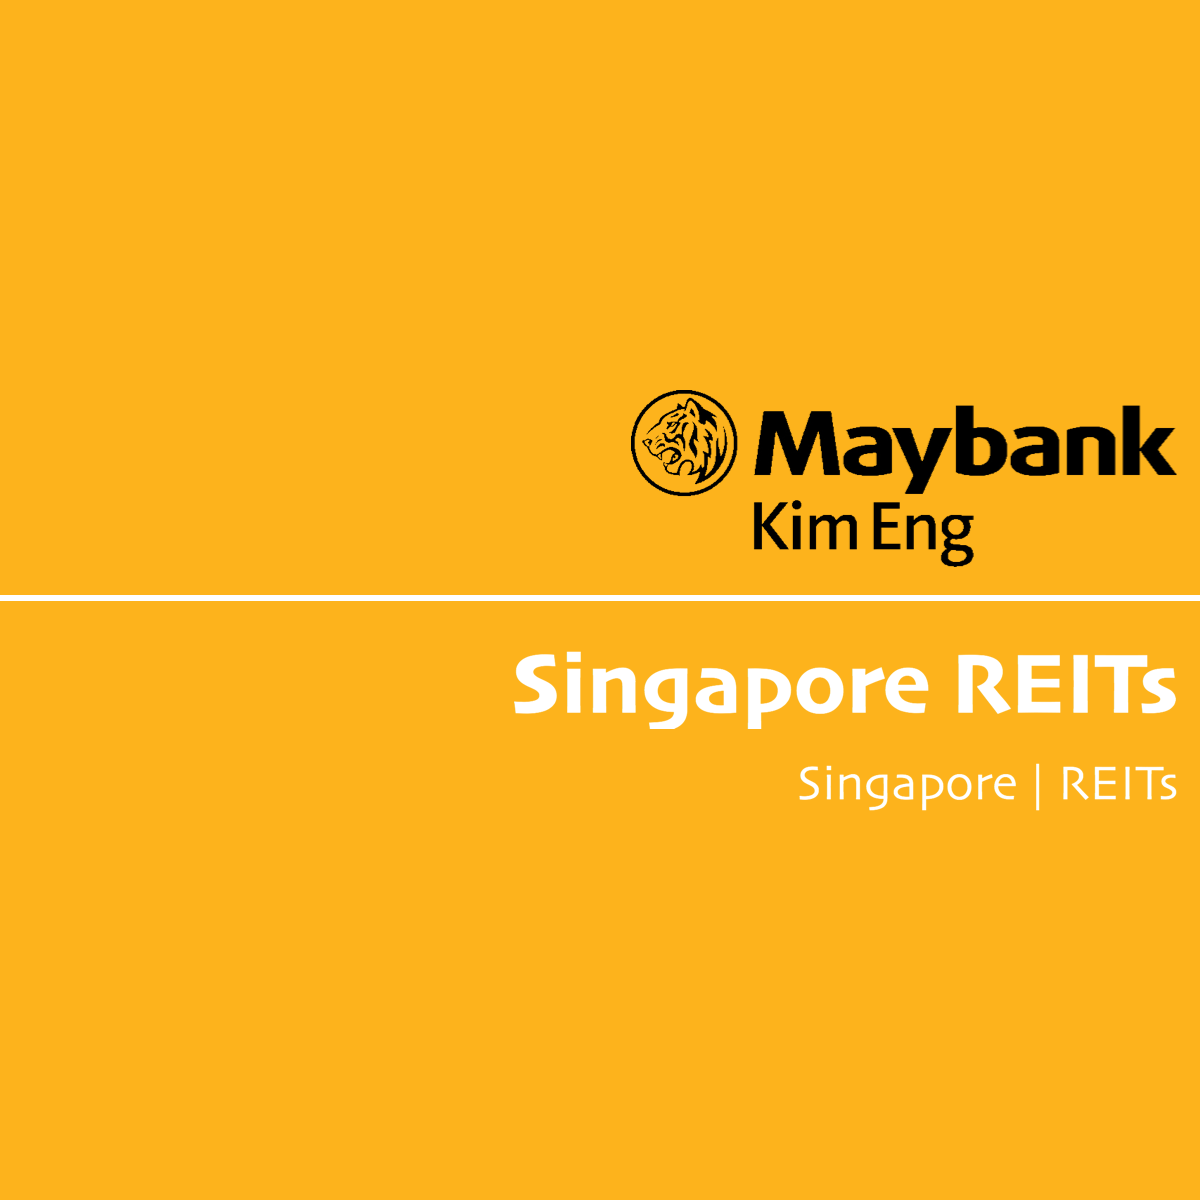 Singapore REITs - Maybank Kim Eng 2017-04-18: Compounding Industrious Assets, REIT-urning to growth